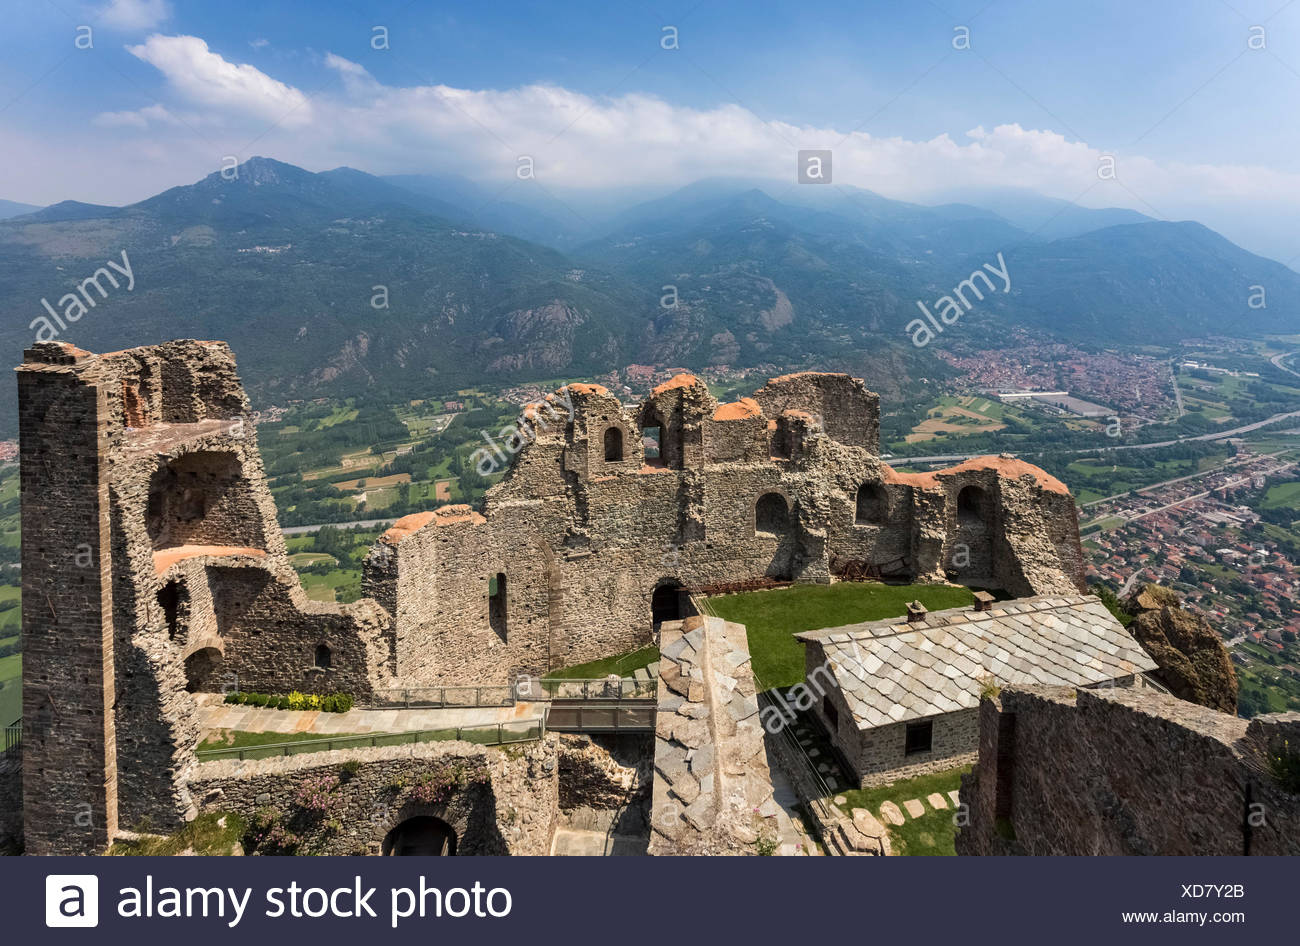 Monte San Michele Stock Photos & Monte San Michele Stock Images - Alamy